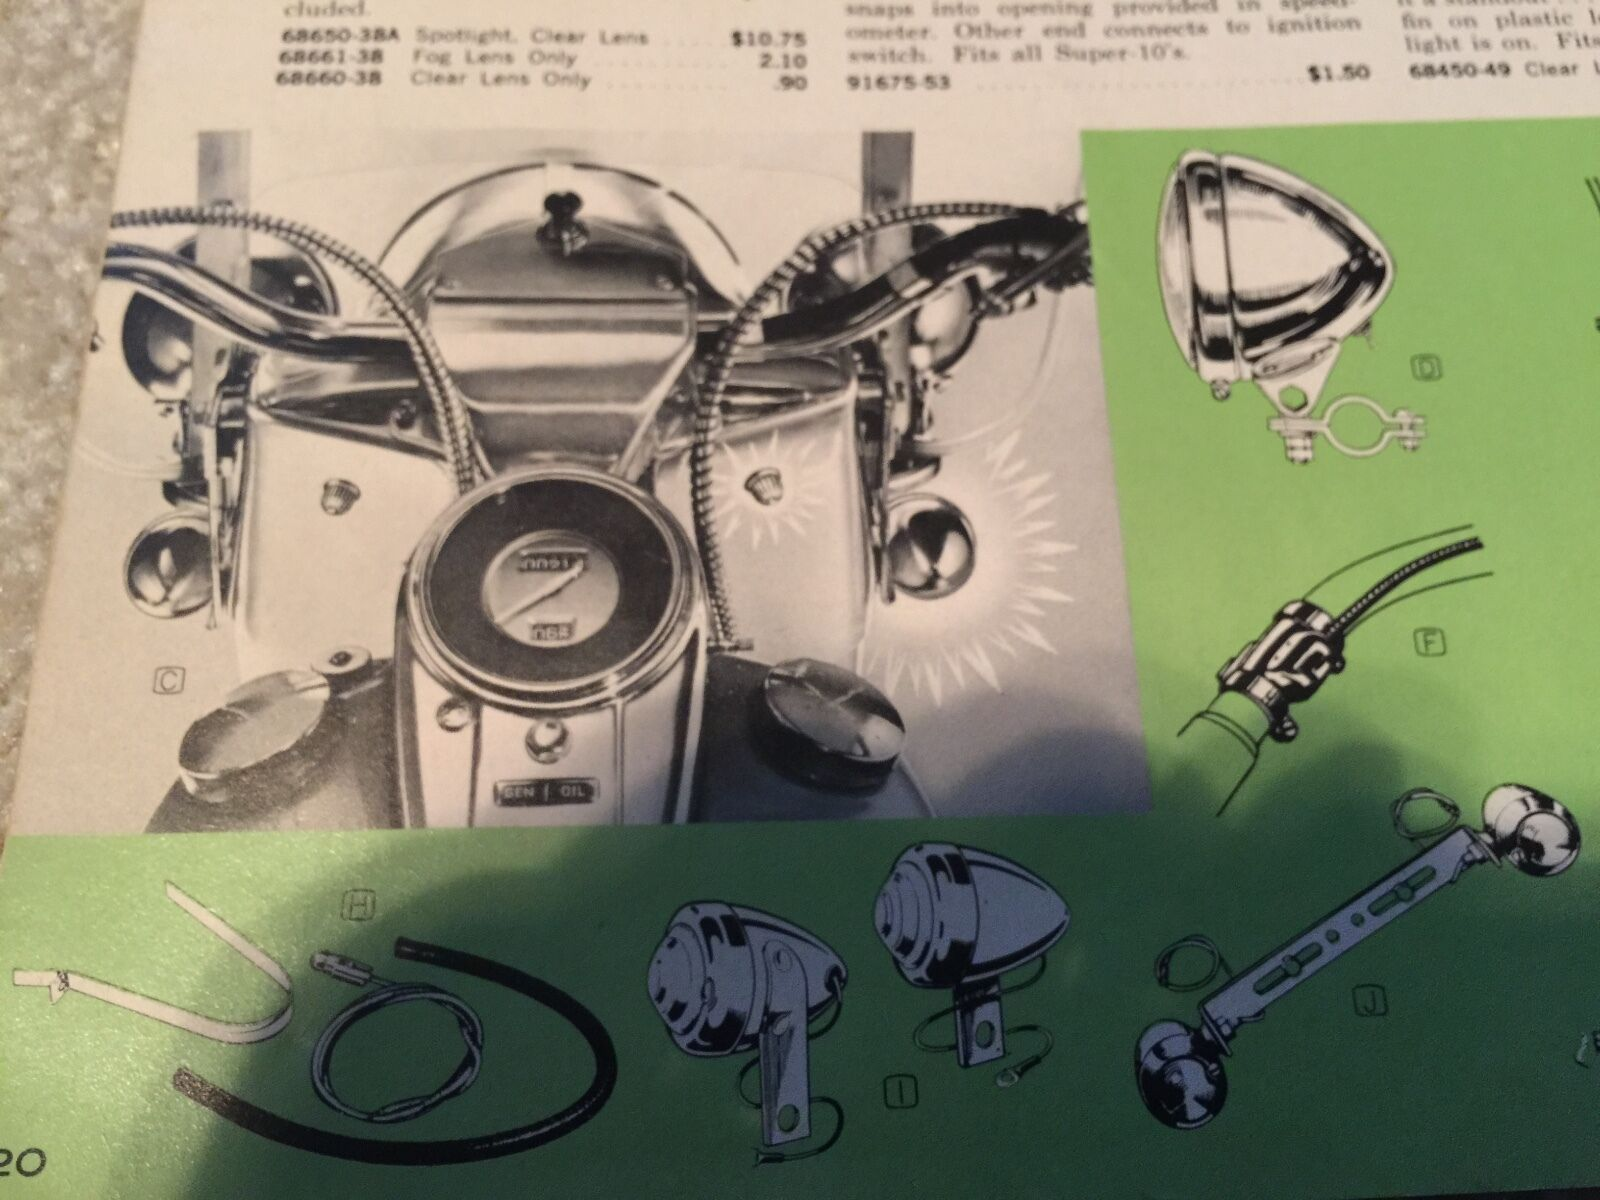 Harley Guide Dh 49 Bullet Lamp Turn Signal Kit 36 61 Panhead Cycle Electrics Wiring Diagram Dh49 3661 Knucklehead 6v